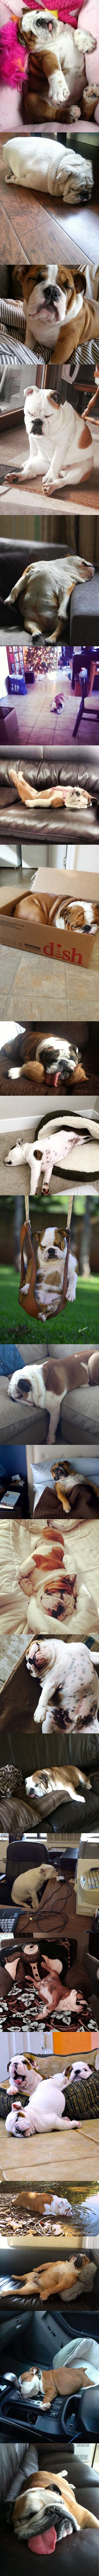 It's official, English Bulldogs can sleep at absolutely any time and anywhere. We challenge you to find a location and time that a Bulldog wouldn't find a way to nap! www.bullymake.com #buldog